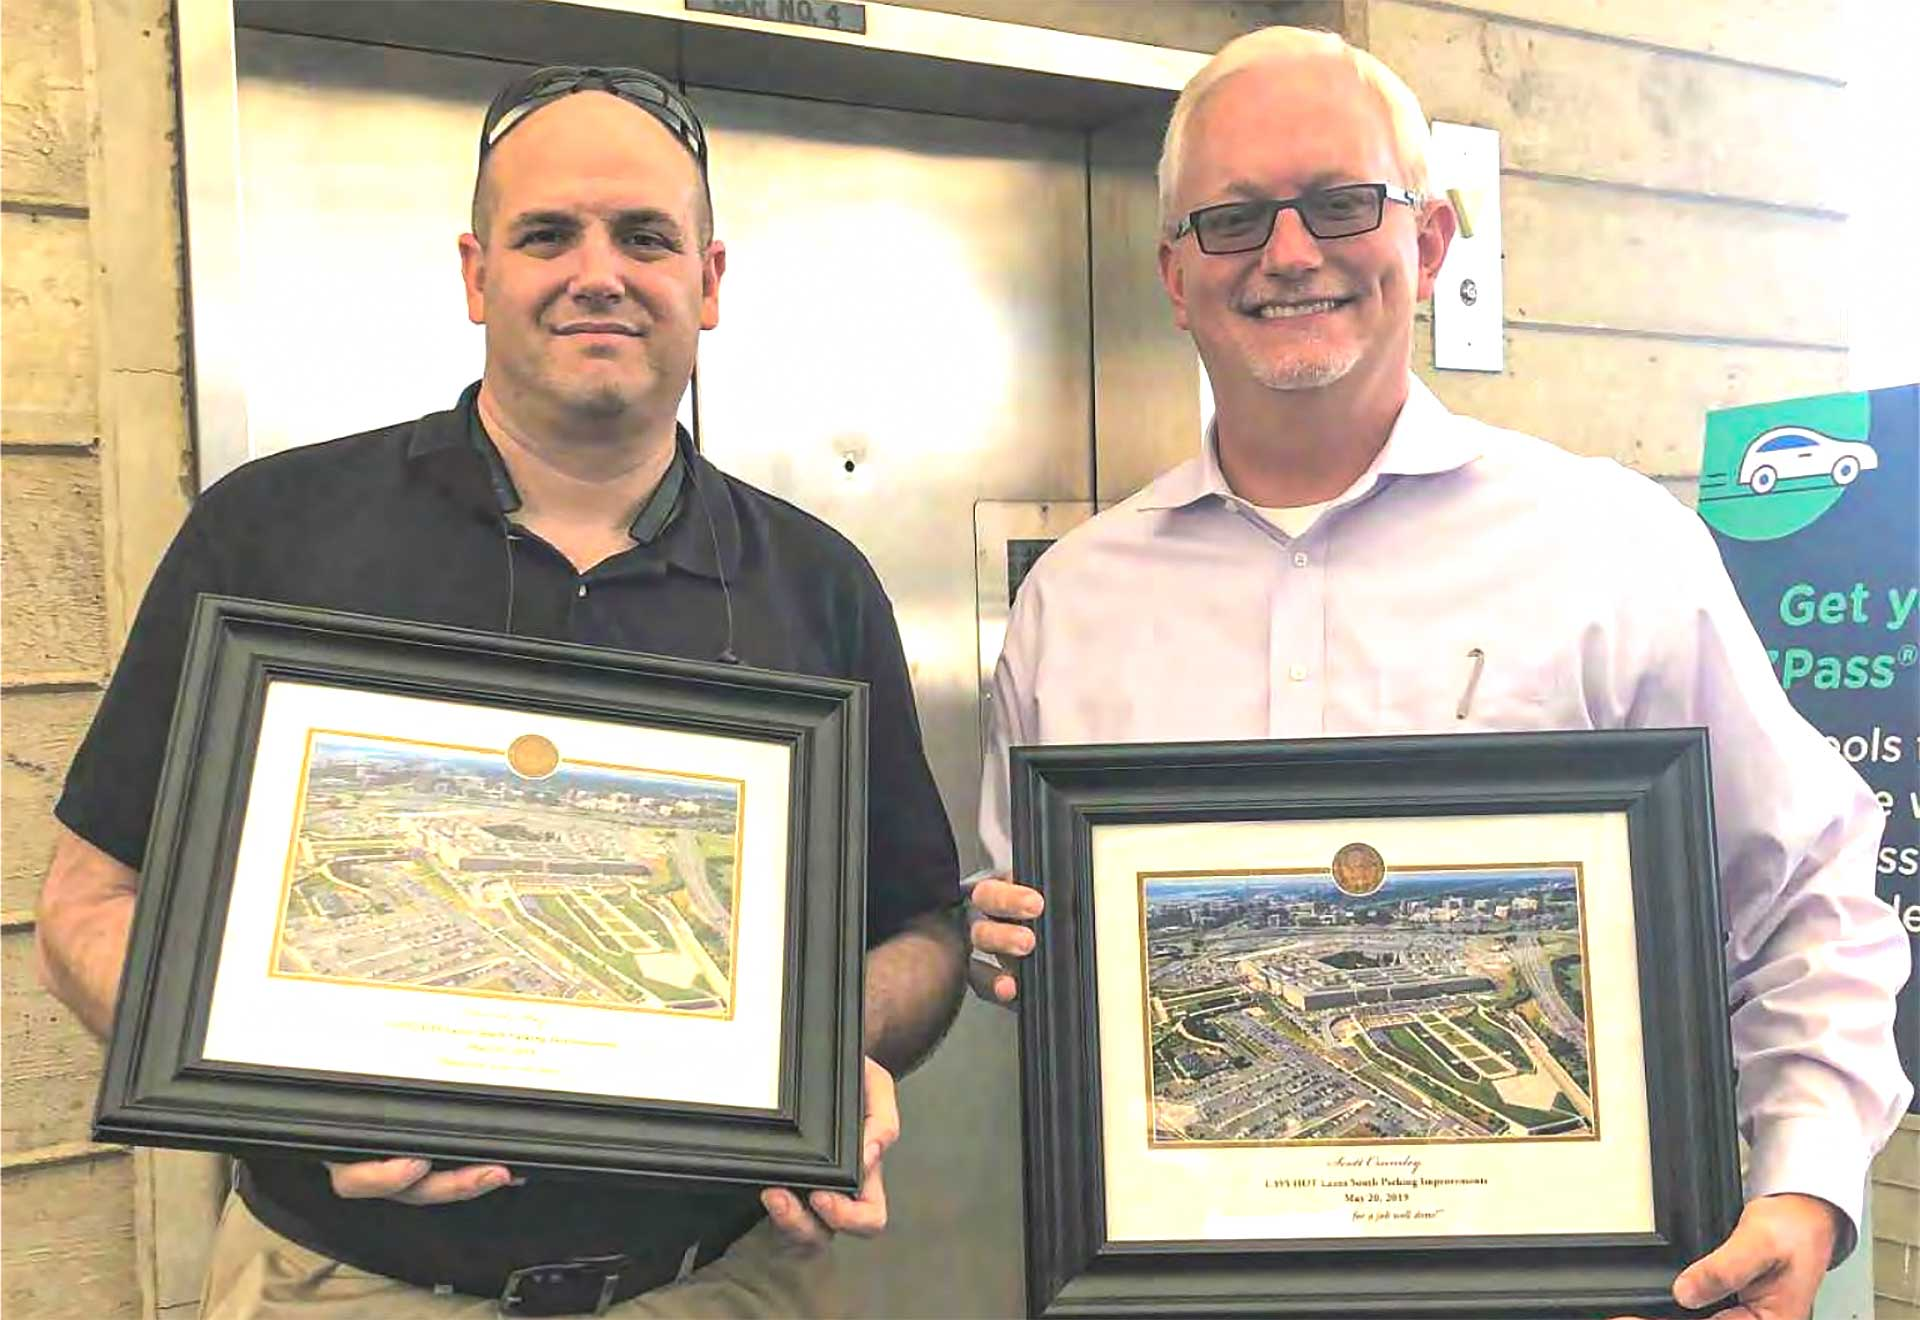 David May and Scott Crumley were recognized with a special picture and plaque at the ceremony by the Pentagon.